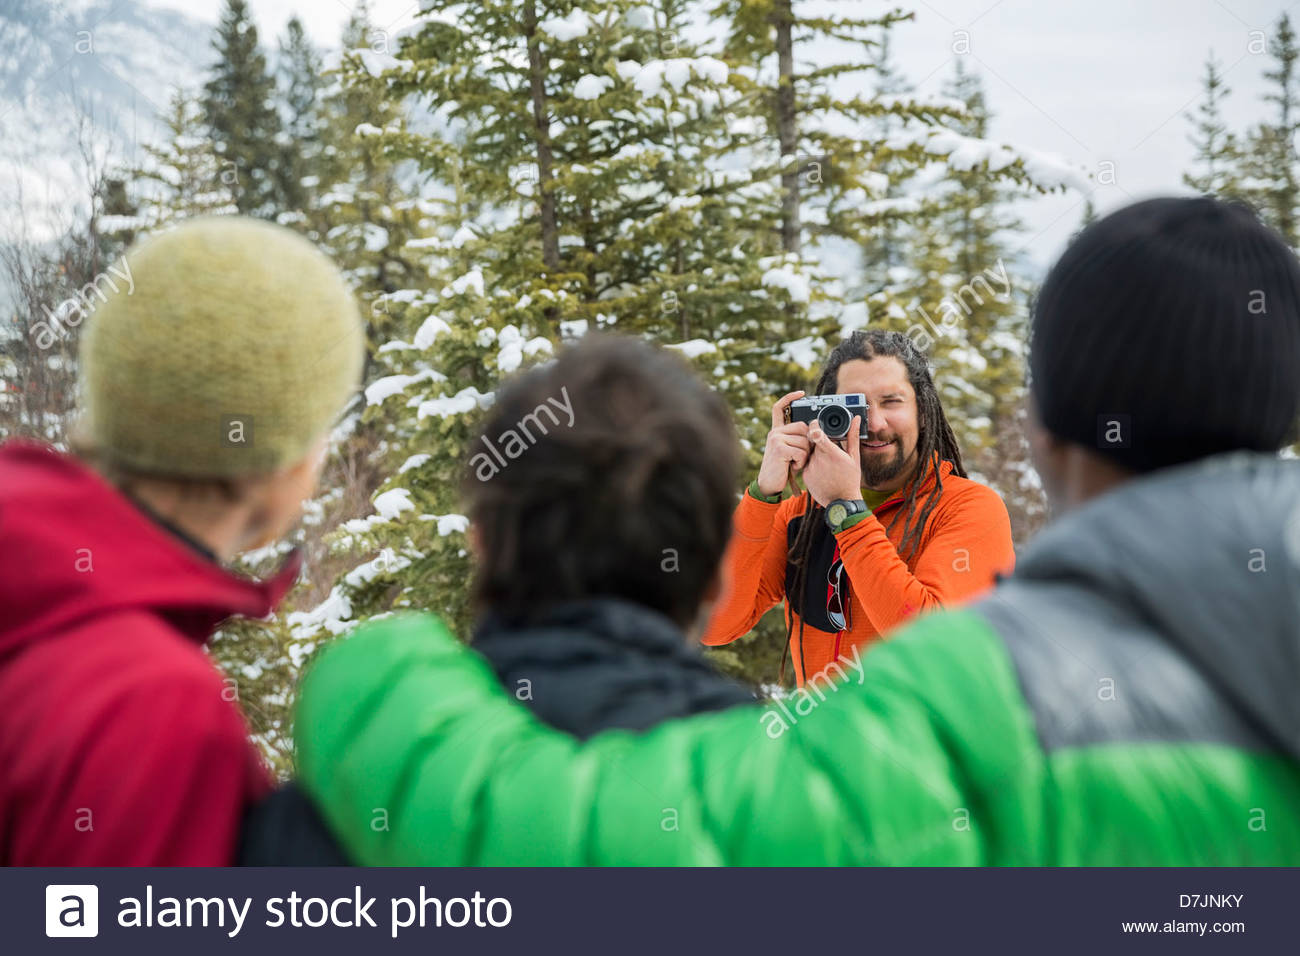 Man taking photograph of friends outside in winter - Stock Image